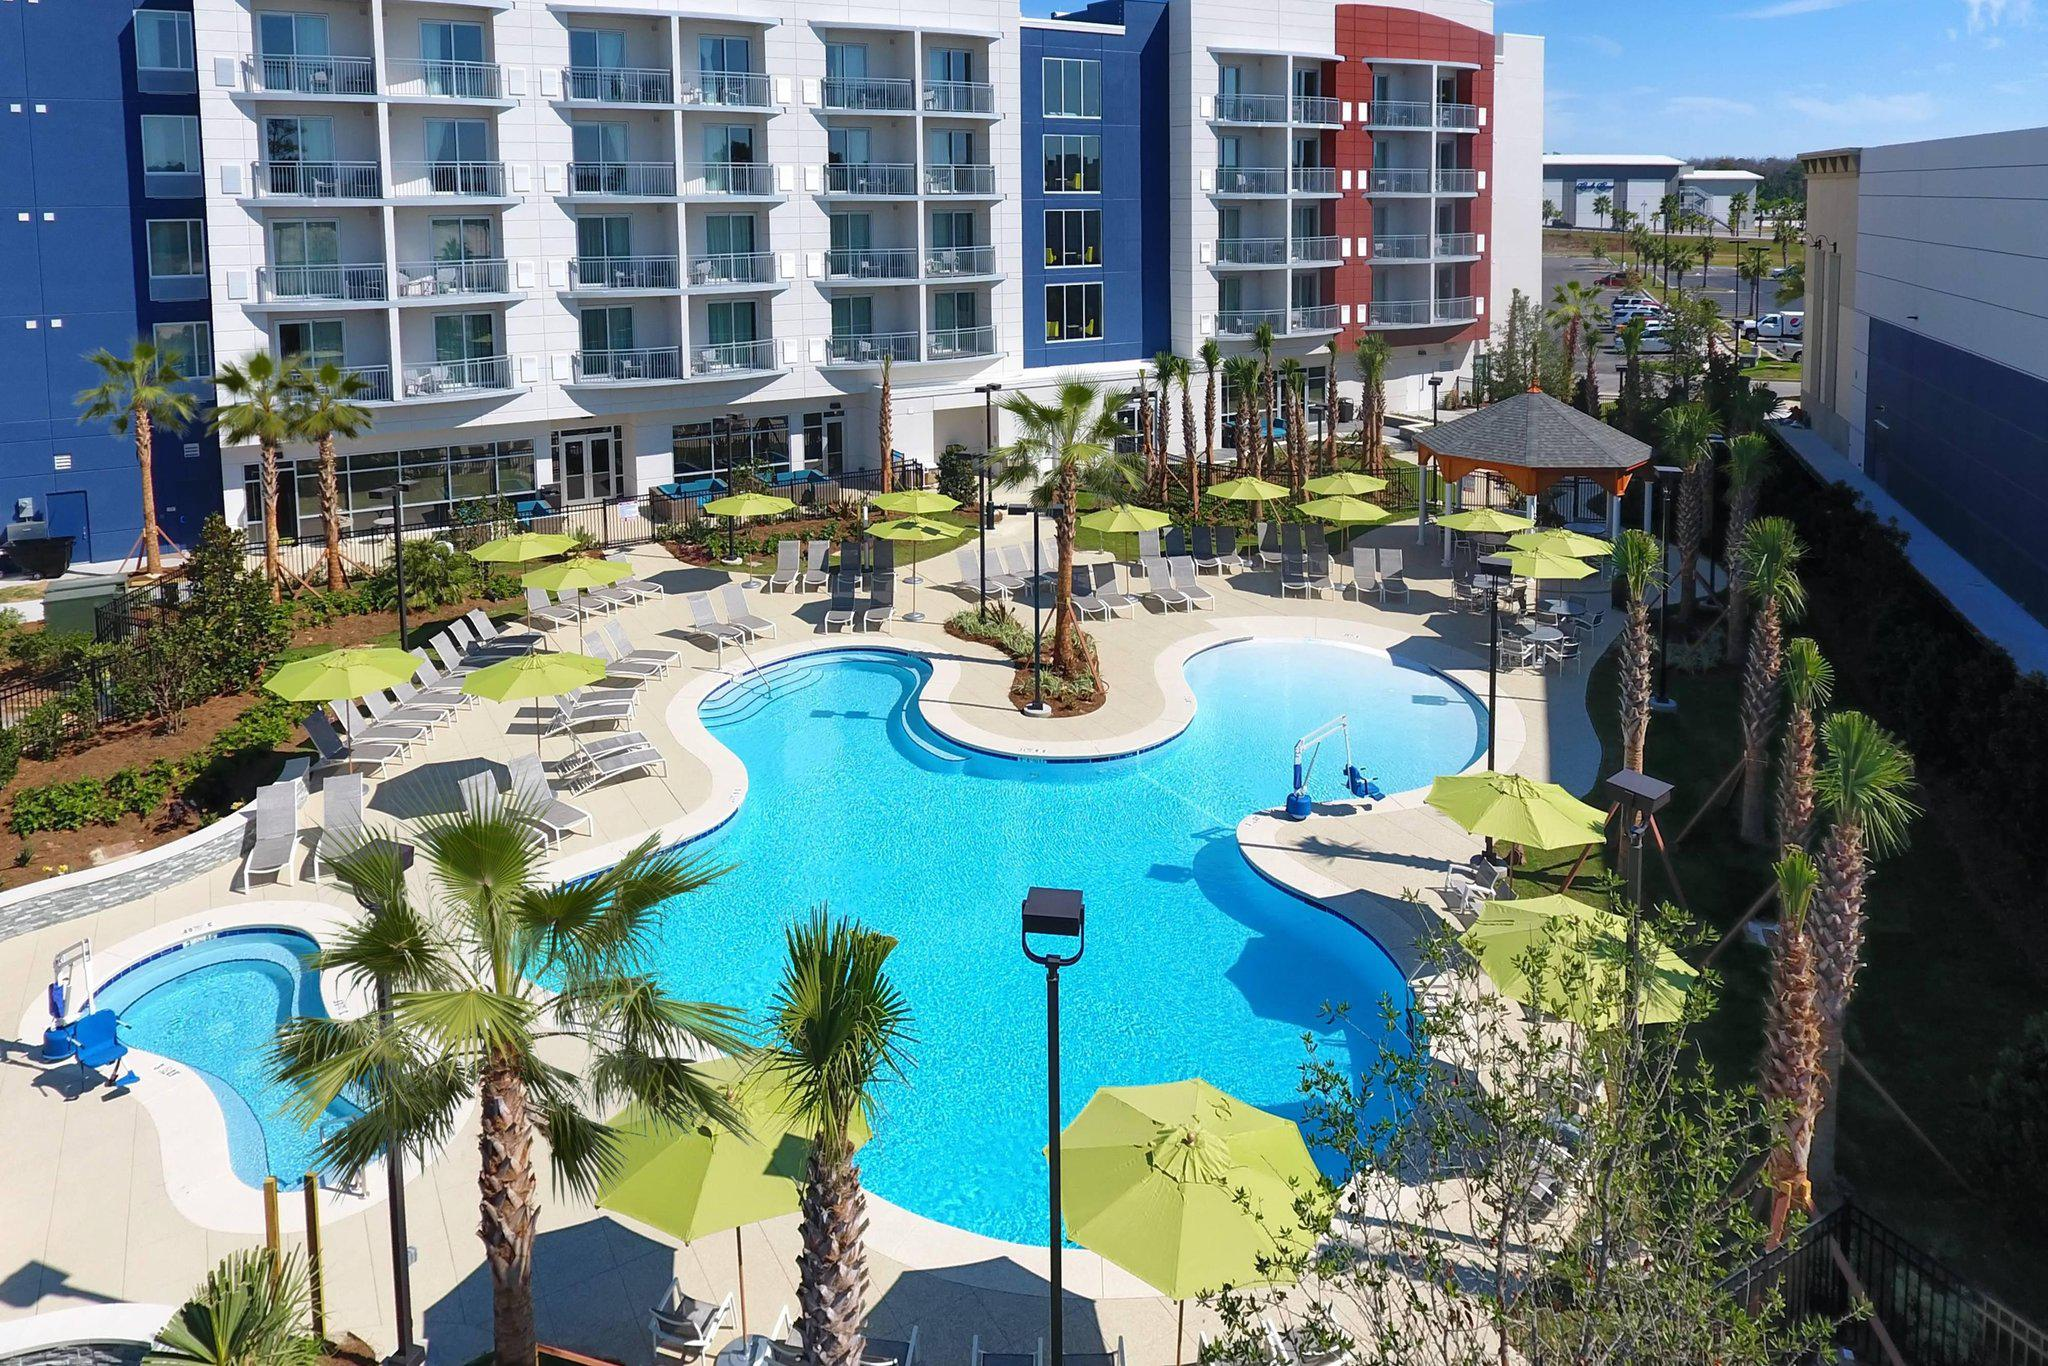 SpringHill Suites by Marriott Orange Beach at The Wharf